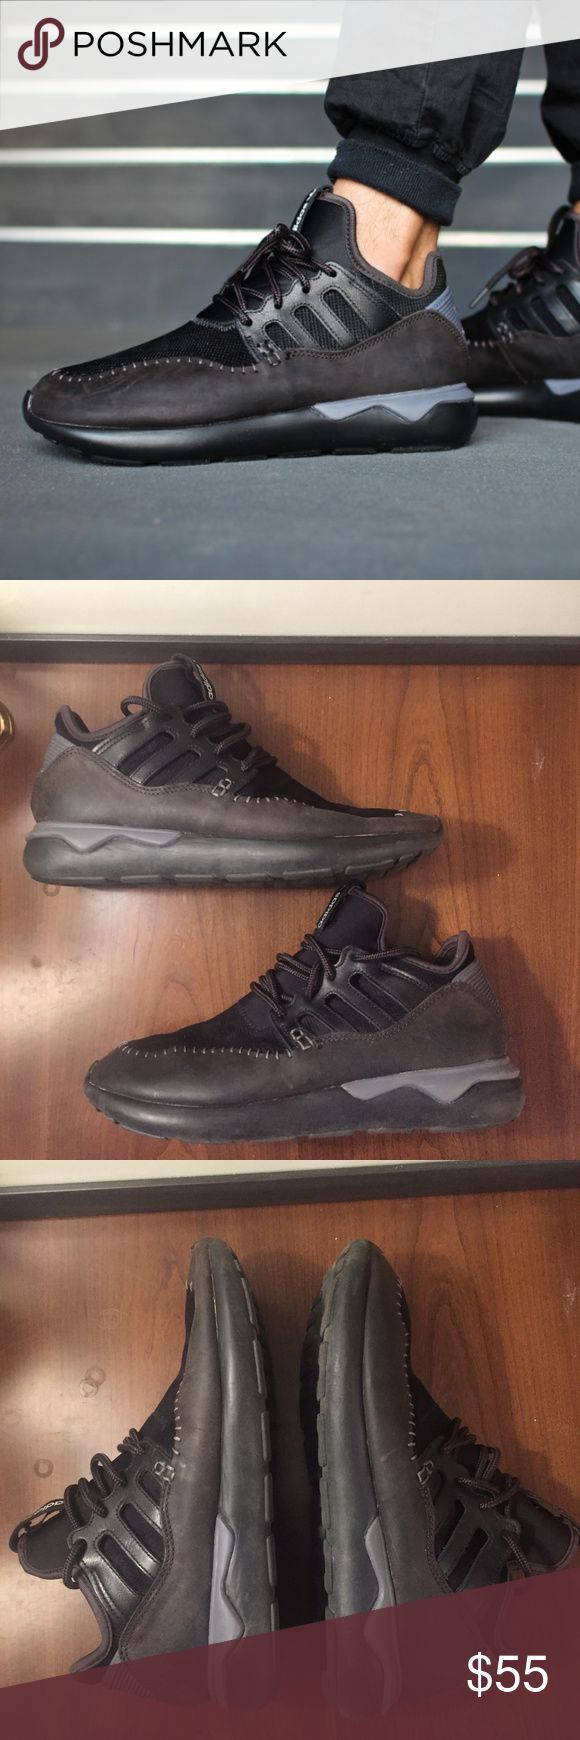 Adidas Tubular Moc Runner 'All Black' (9) Excellent condition Men's Adidas Tubular Moc Runner.  SIze 9.  - An all new hybrid of the popular Tubular runner and a moccasin style. - Features a textile and suede material. - Features a ikat pattern on portions of the upper textile material. - Includes a back heel support, and more. adidas Shoes Sneakers